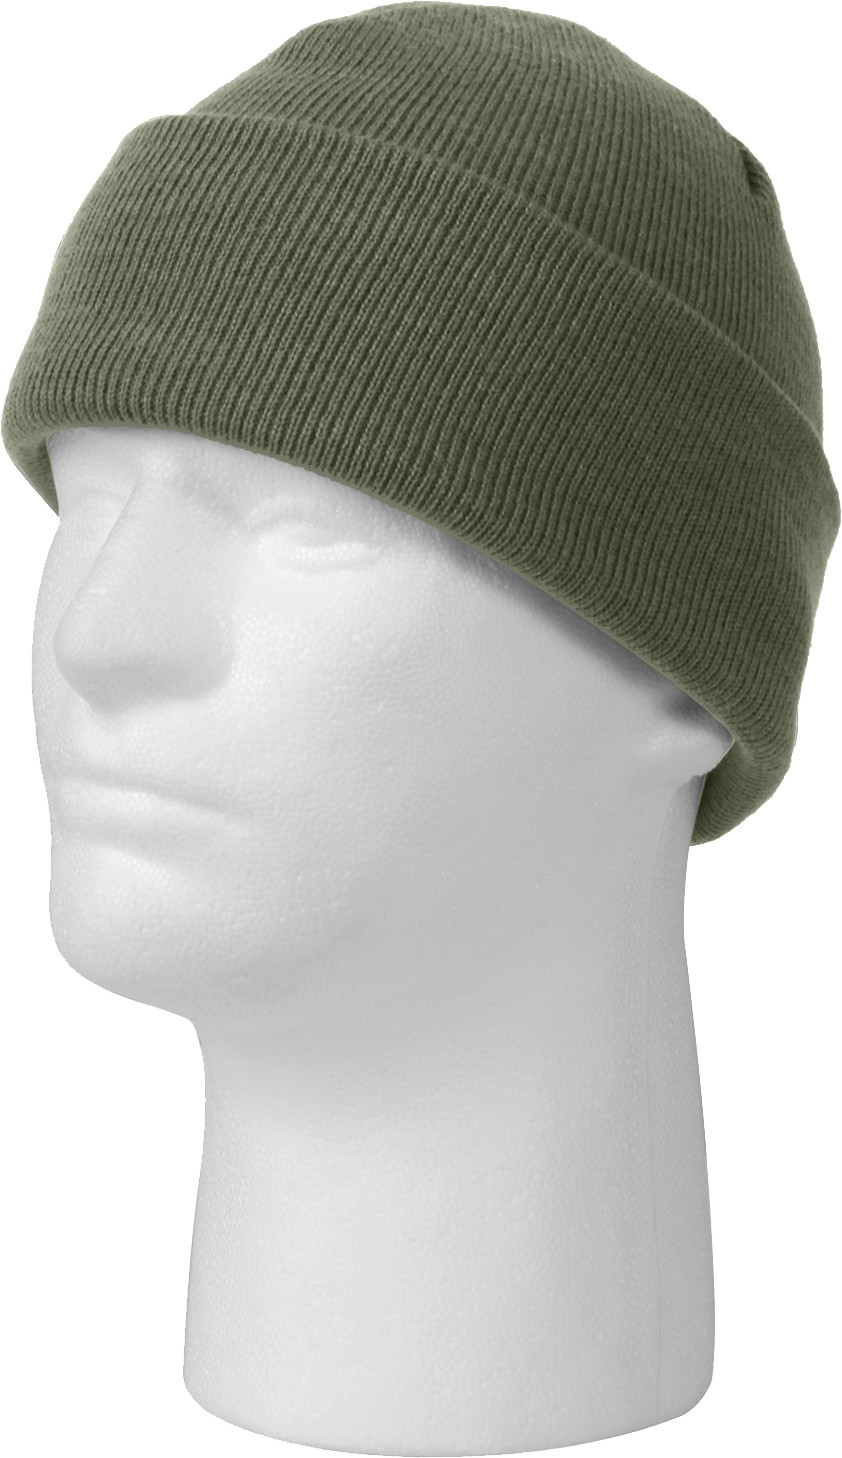 Foliage Green Military Deluxe Winter Beanie Hat Acrylic Watch Cap 08704a745